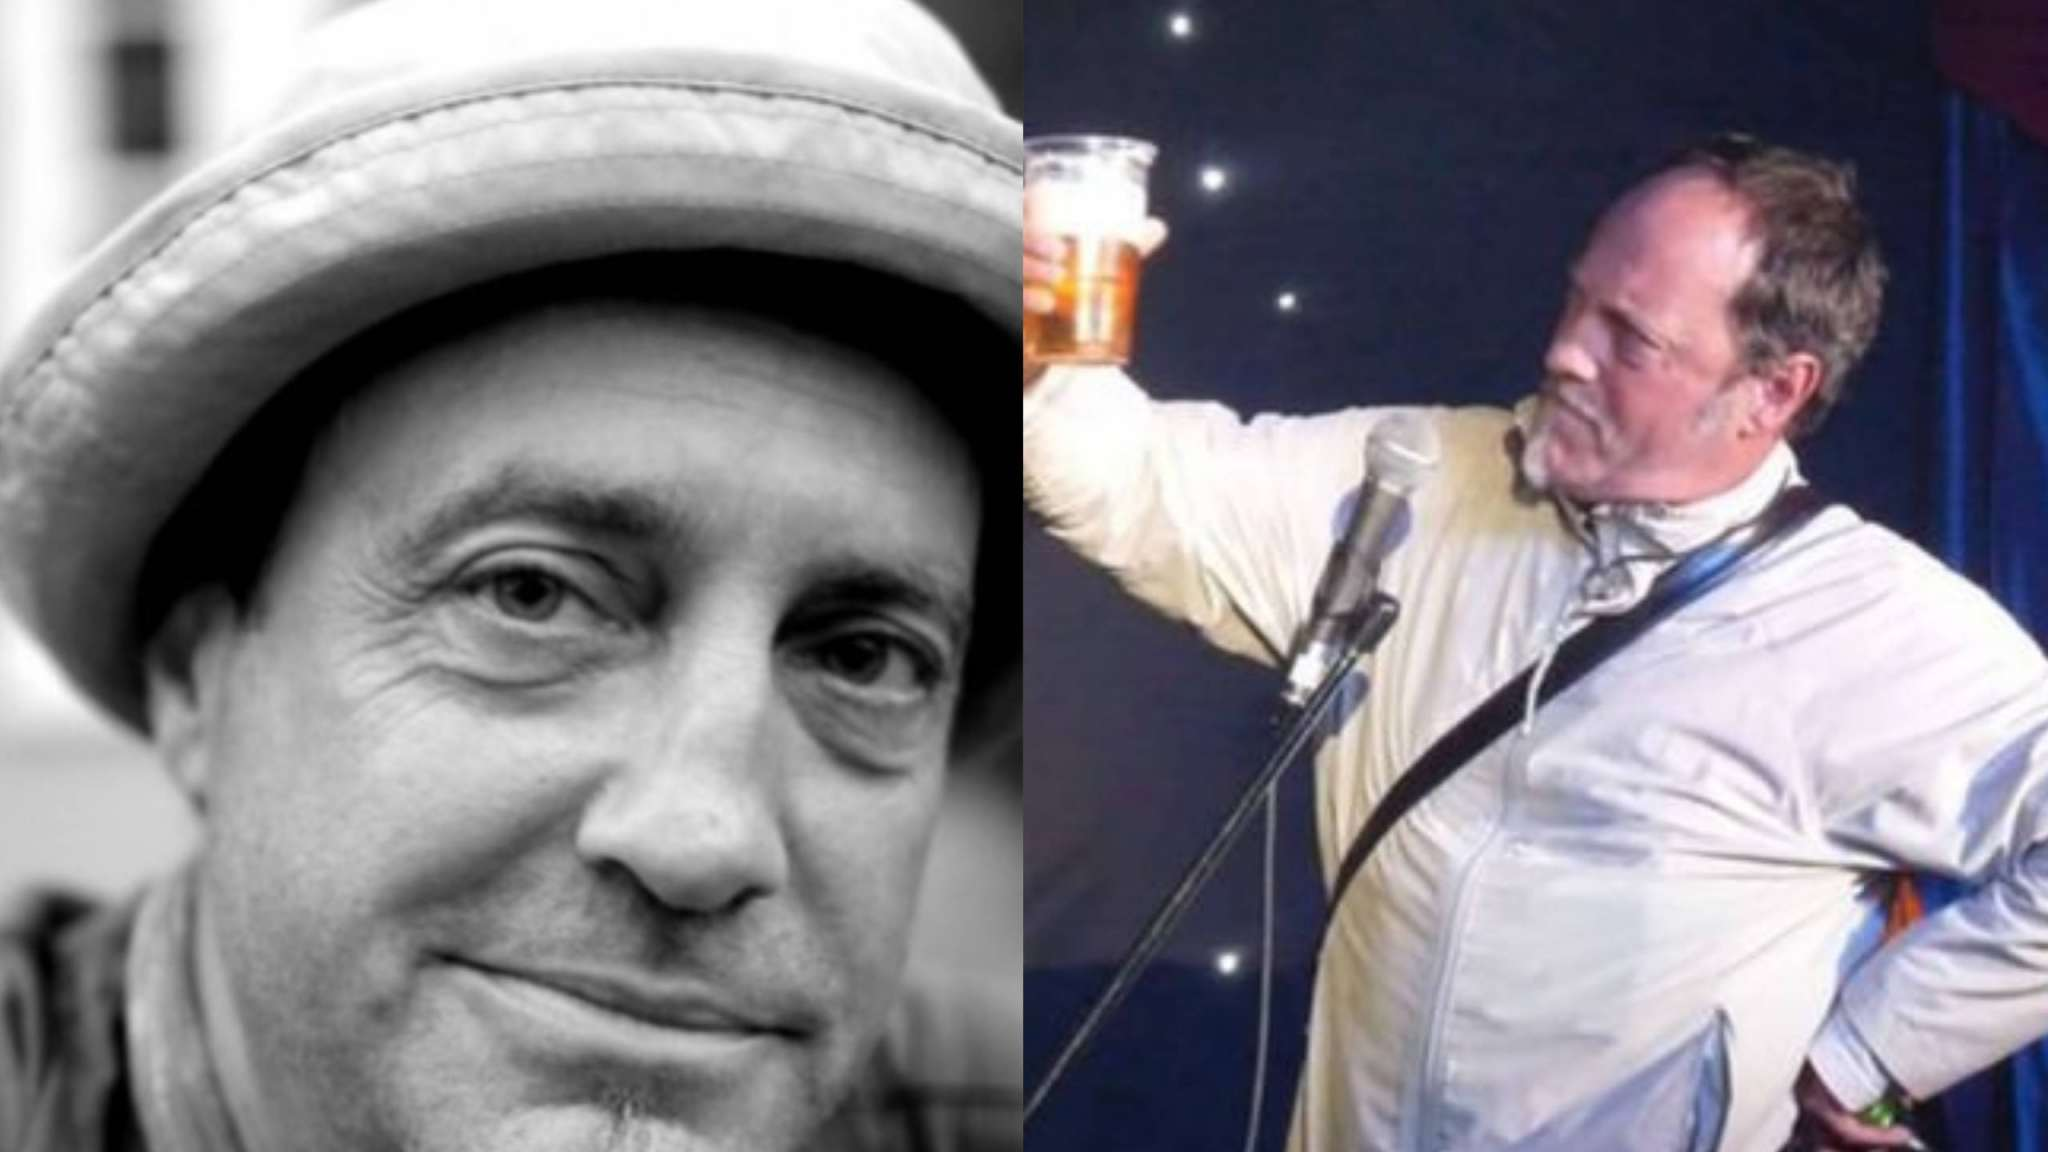 ian-cognito-comedian-dies-during-stand-up-number-and-people-laugh-thinking-it-was-part-of-the-act